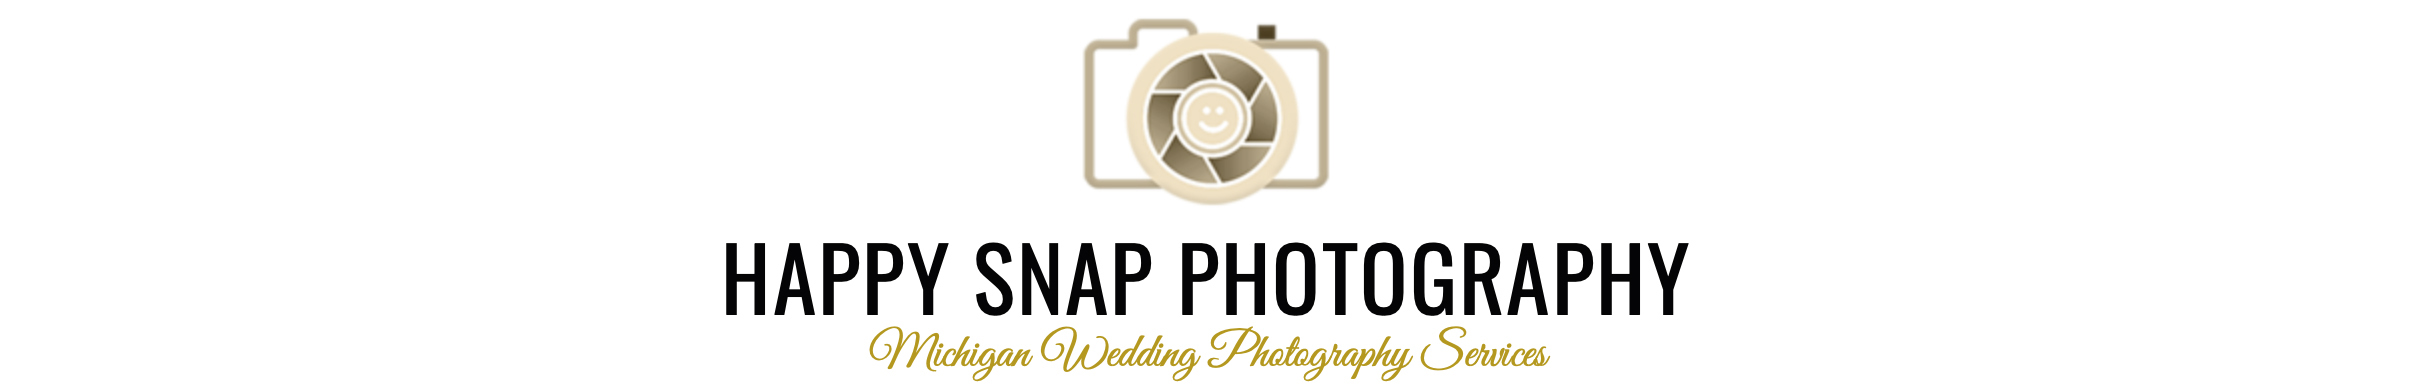 Happy Snap Photography